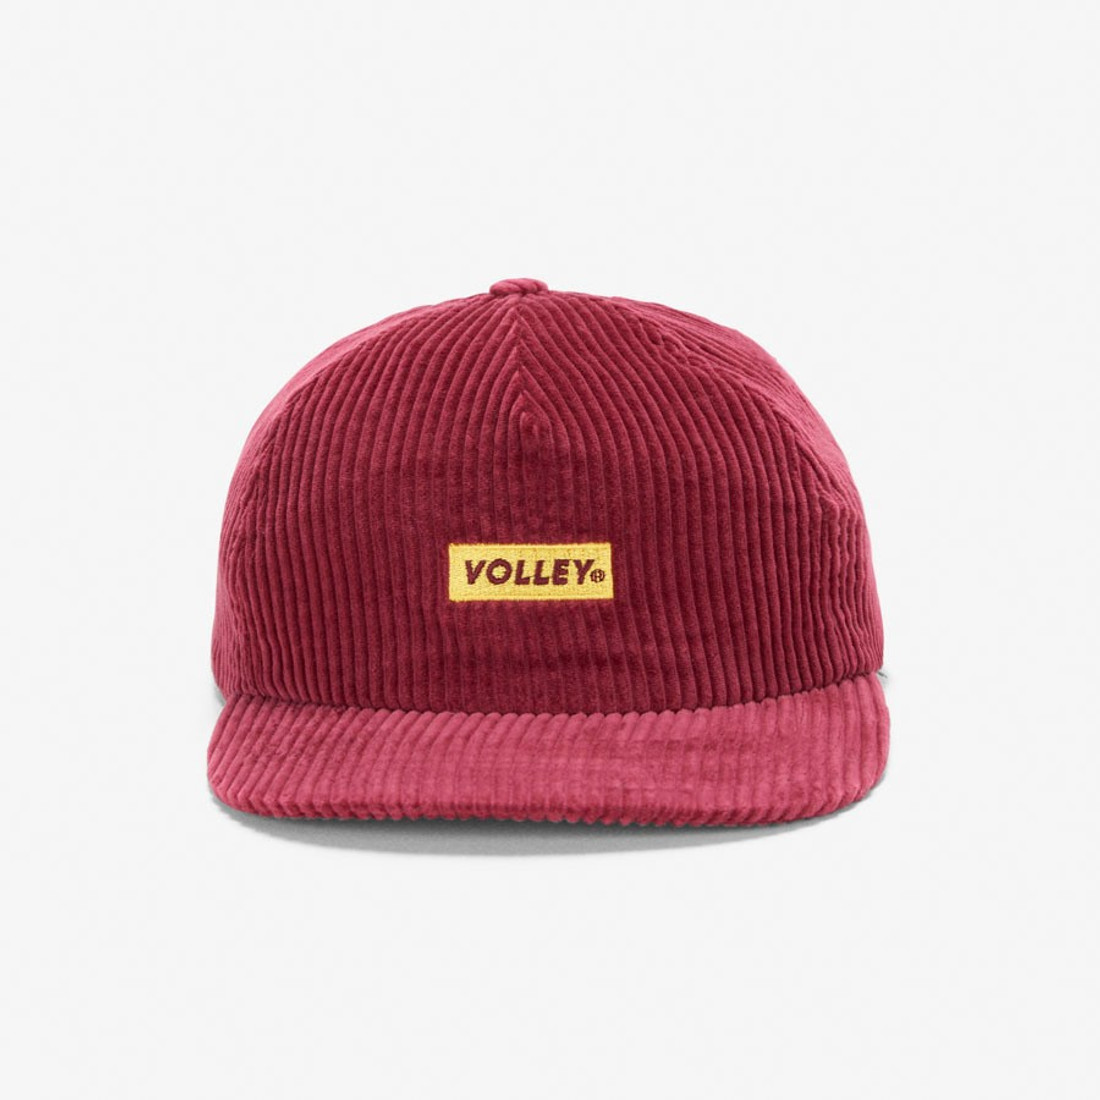 Volley NONCORDUROY HAT Red   1